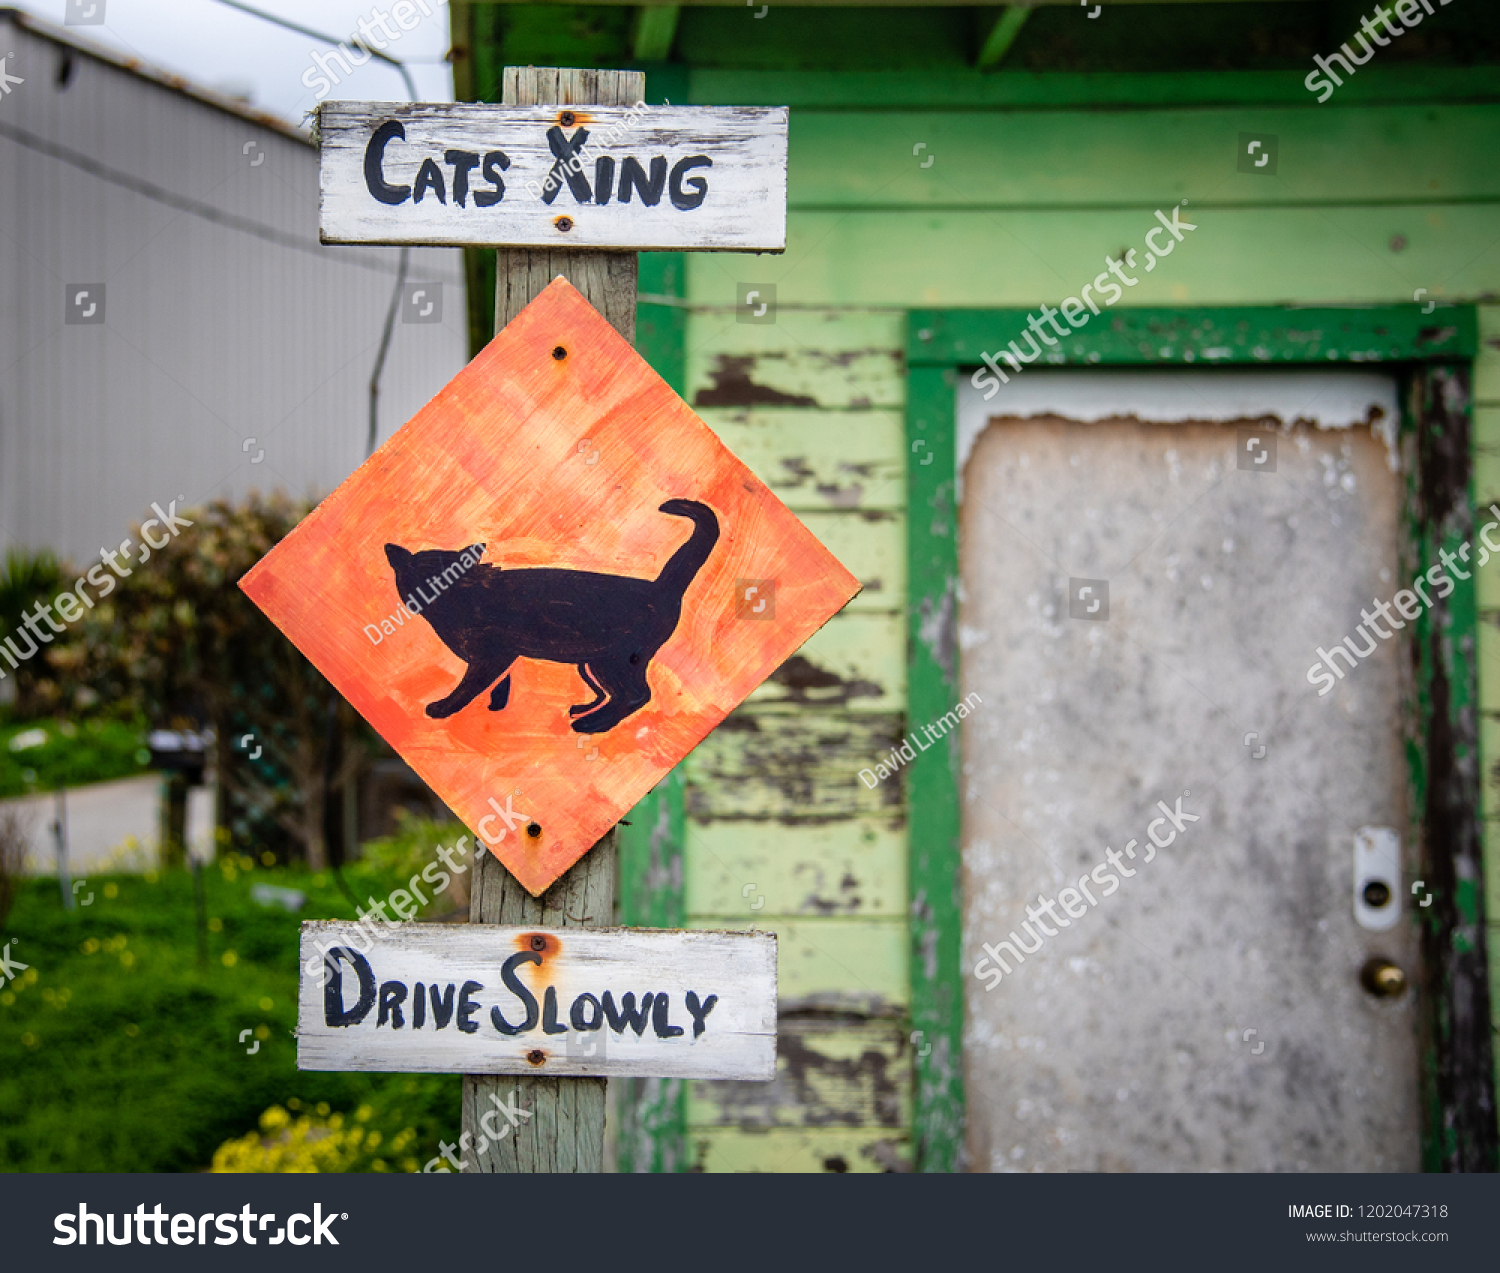 A cat crossing (xing) street sign cautions drivers to drive slowly to avoid collisions with cats.